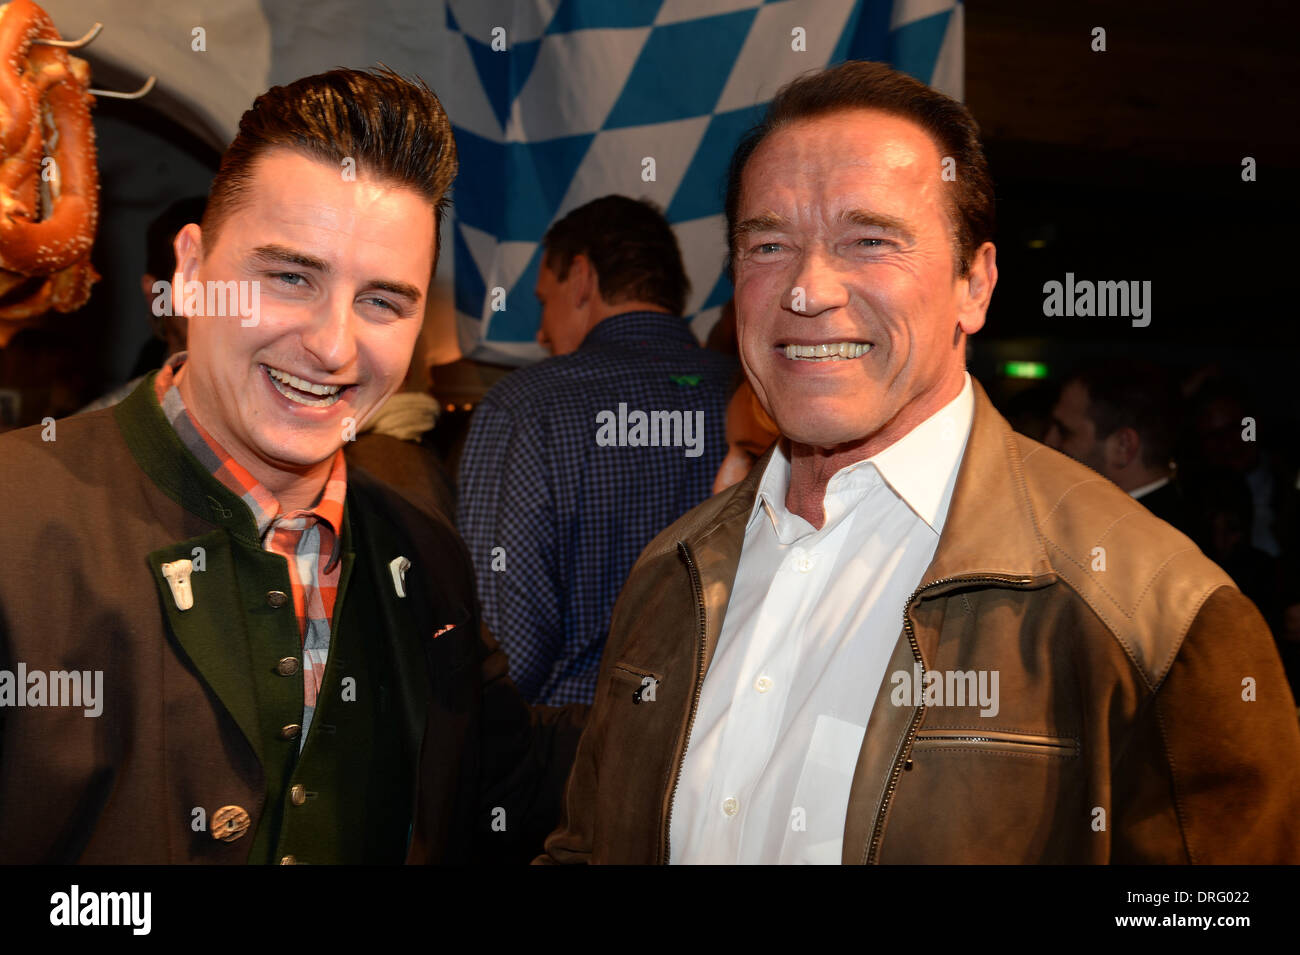 Kitzbuehel, Austria. 24th Jan, 2014. Former US governor and Hollywood actor Arnold Schwarzenegger (R) poses with singer Andreas Gabalier (L) at the Bavarian veal sausage party in the Stanglwirt bar near Kitzbuehel, Austria, 24 January 2014. Many celebrities came for the annual Austrian downhill ski race Hahnenkamm race in worldfamous skiing location. Photo: Felix Hoerhager/dpa/Alamy Live News - Stock Image